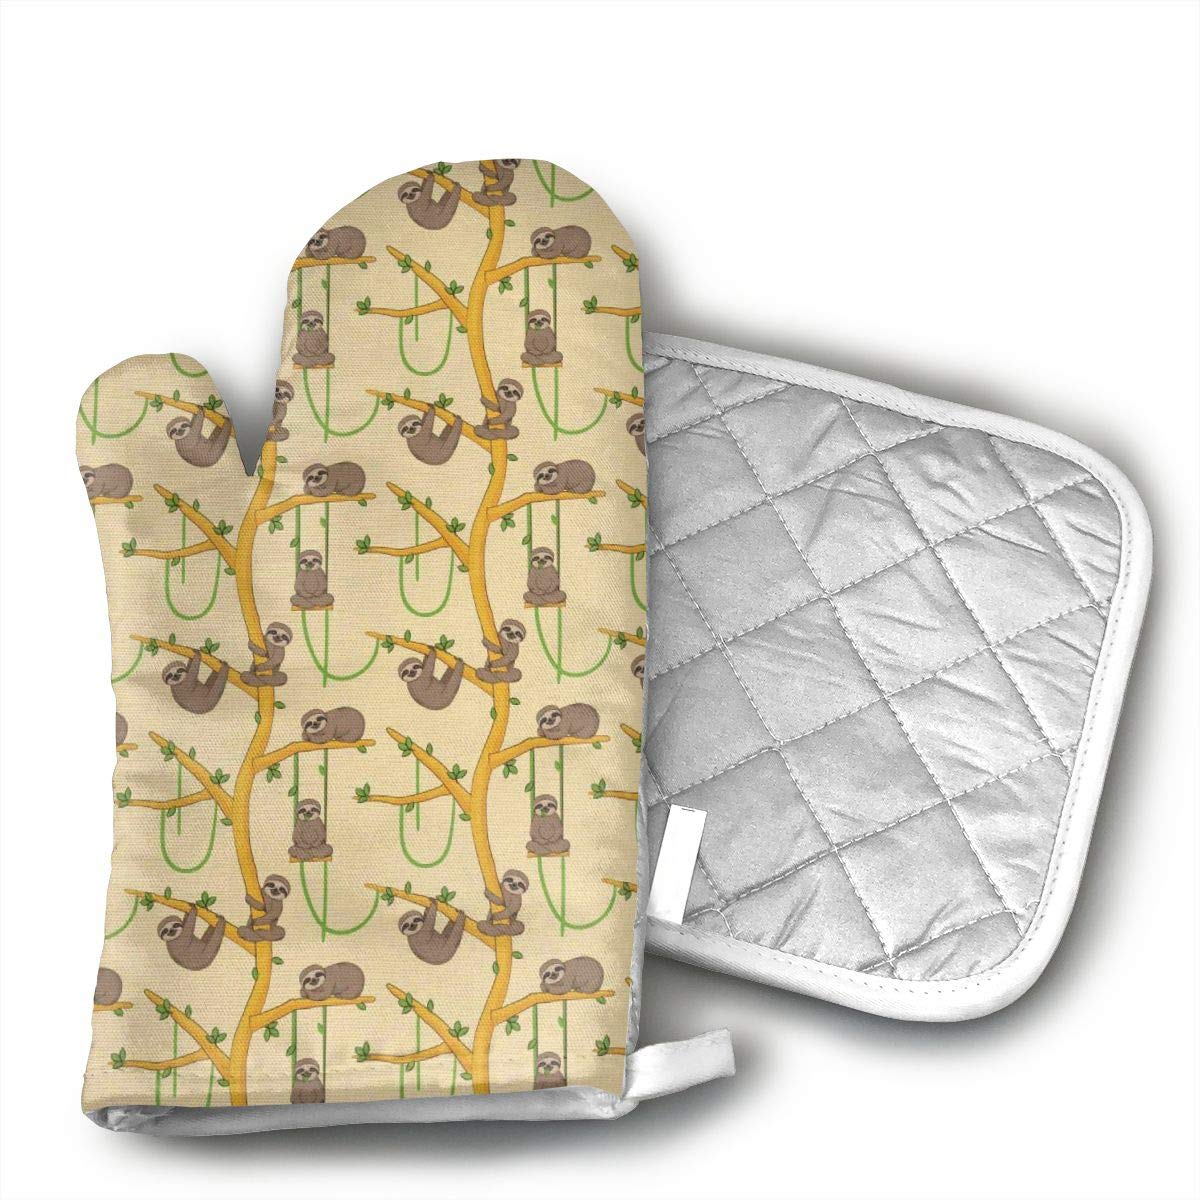 EROJfj Sloth Animal Cartoon Style Oven Mitts and Potholders BBQ Gloves-Oven Mitts and Pot Holders Non-Slip Cooking Gloves for Cooking Baking Grilling